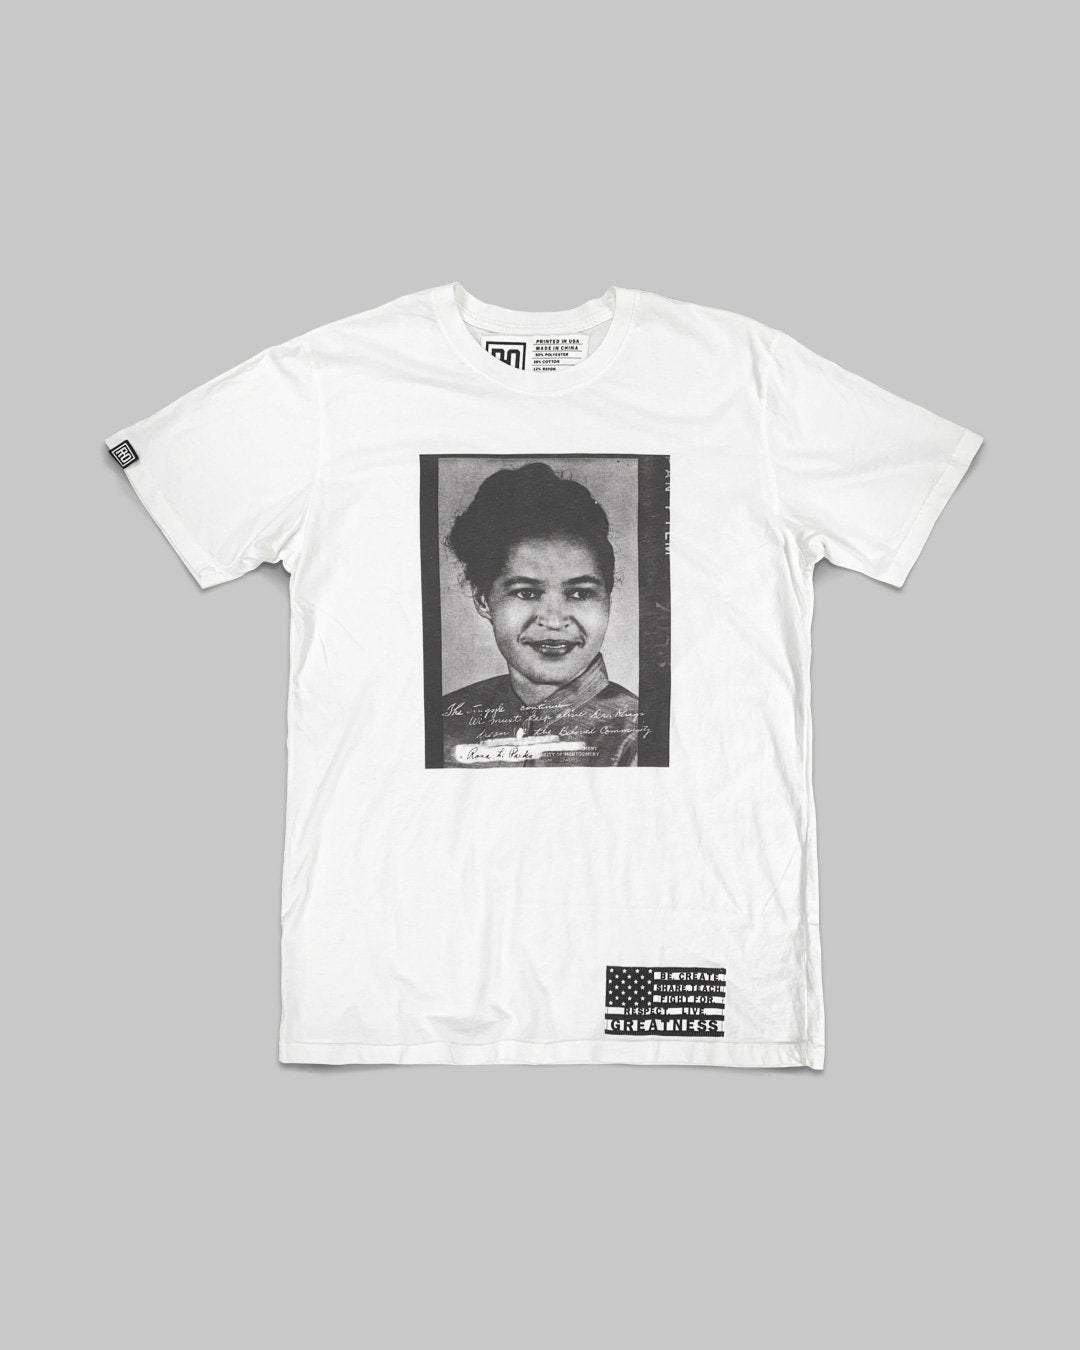 BHT - Rosa Parks Photo Tee - Roots of Inc dba Roots of Fight